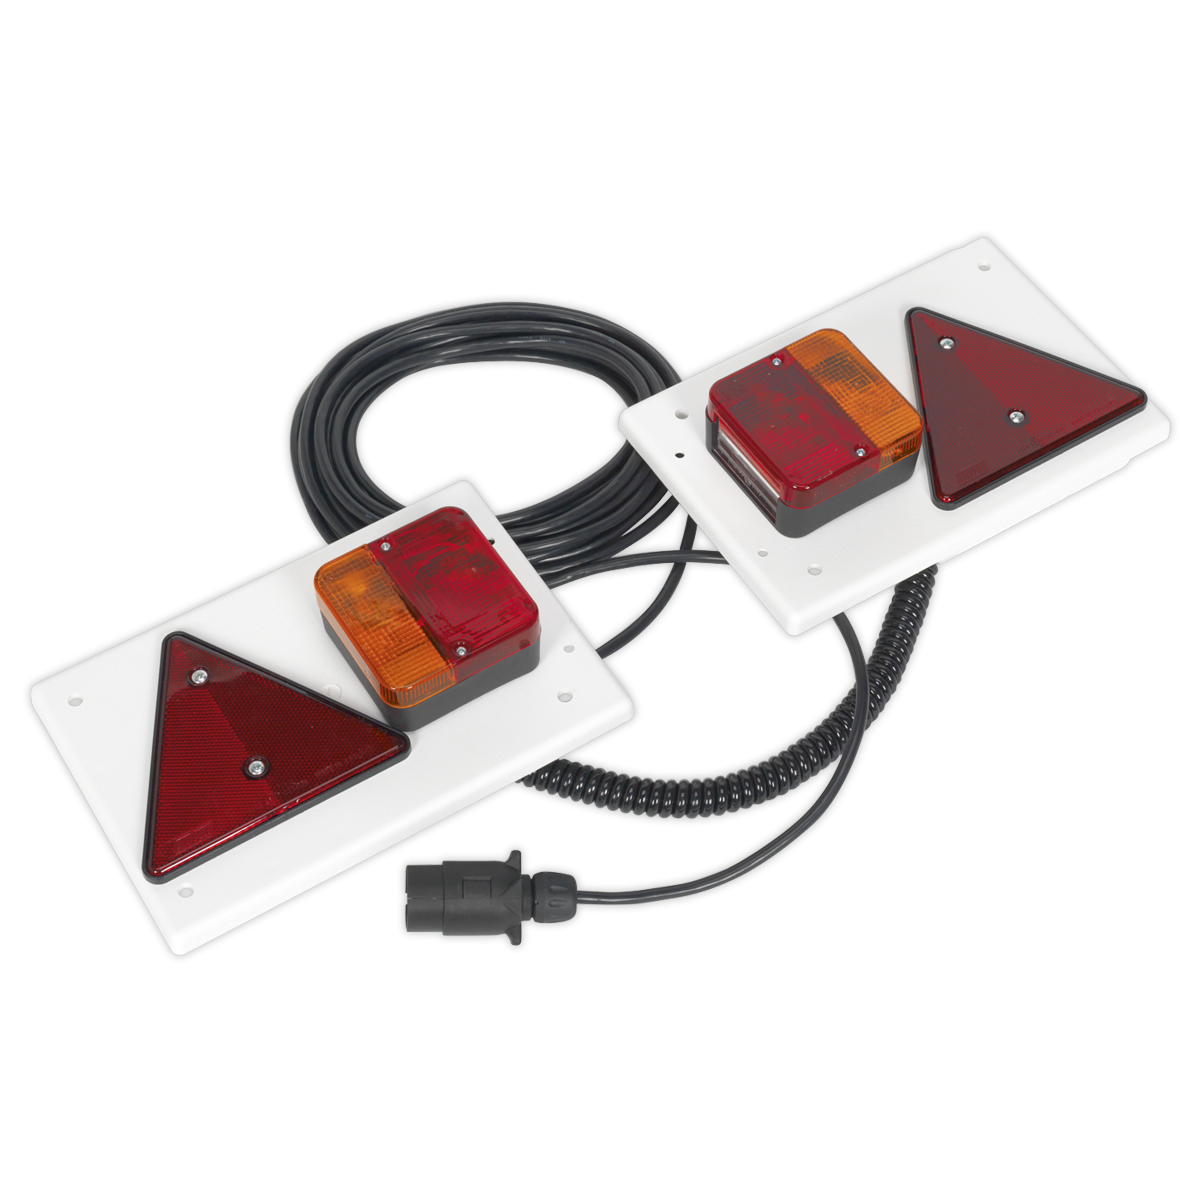 Lighting Board Set 2pc with 10mtr Cable 12V Plug